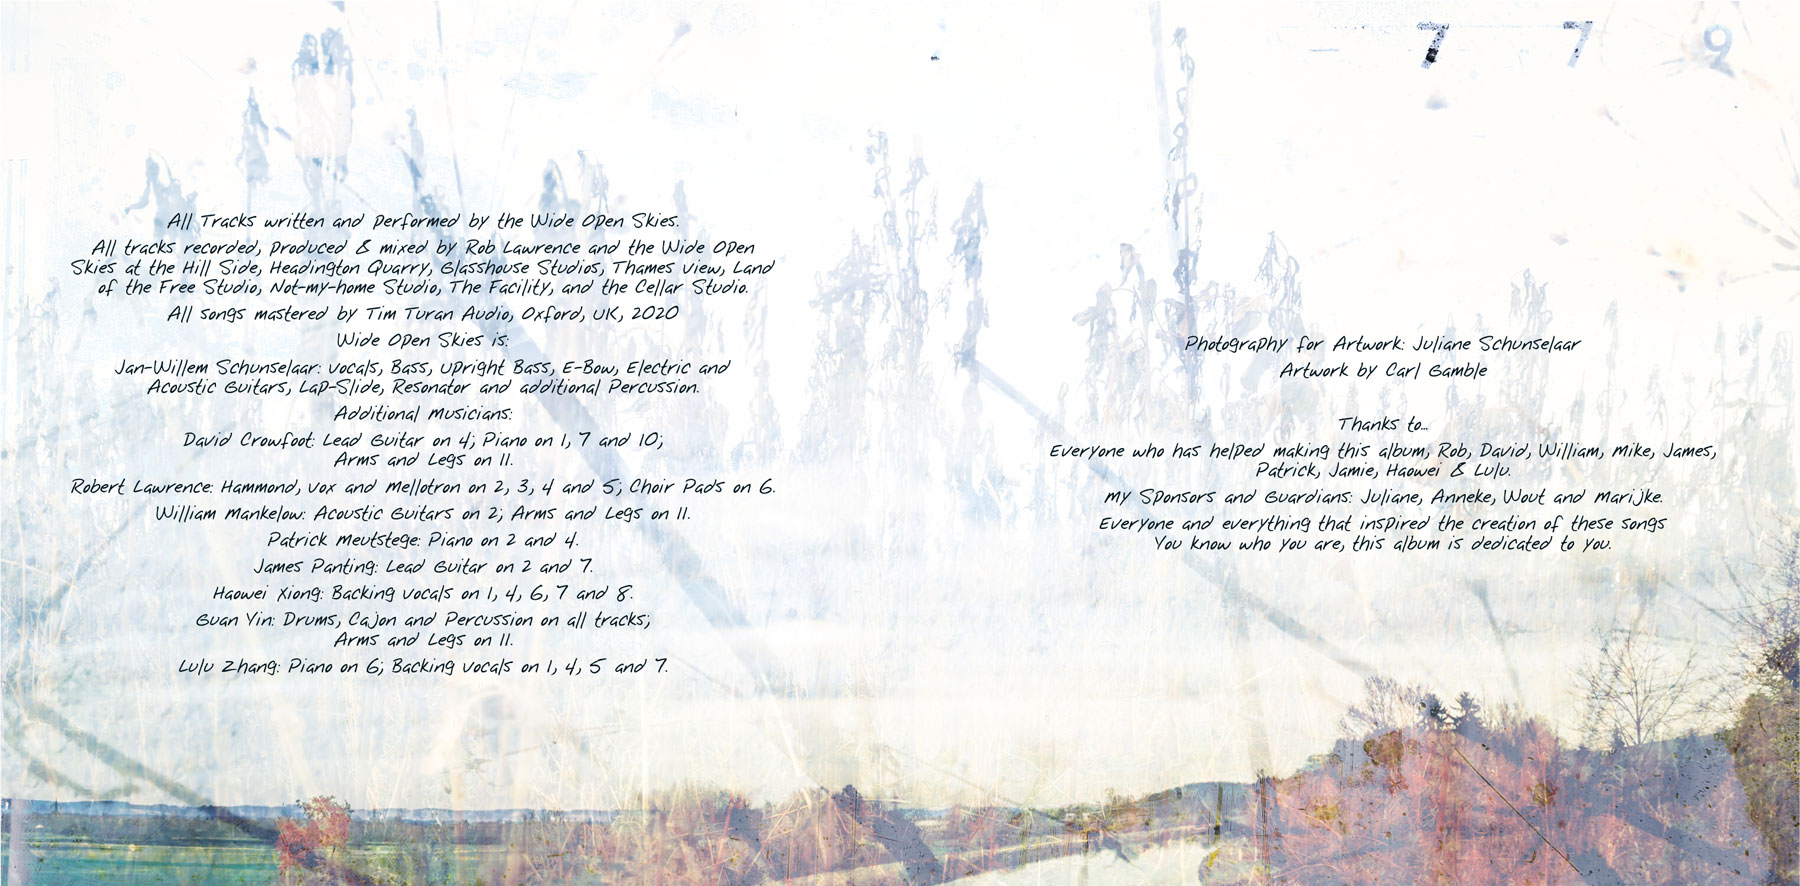 The Wide Open Skies CD album insides design